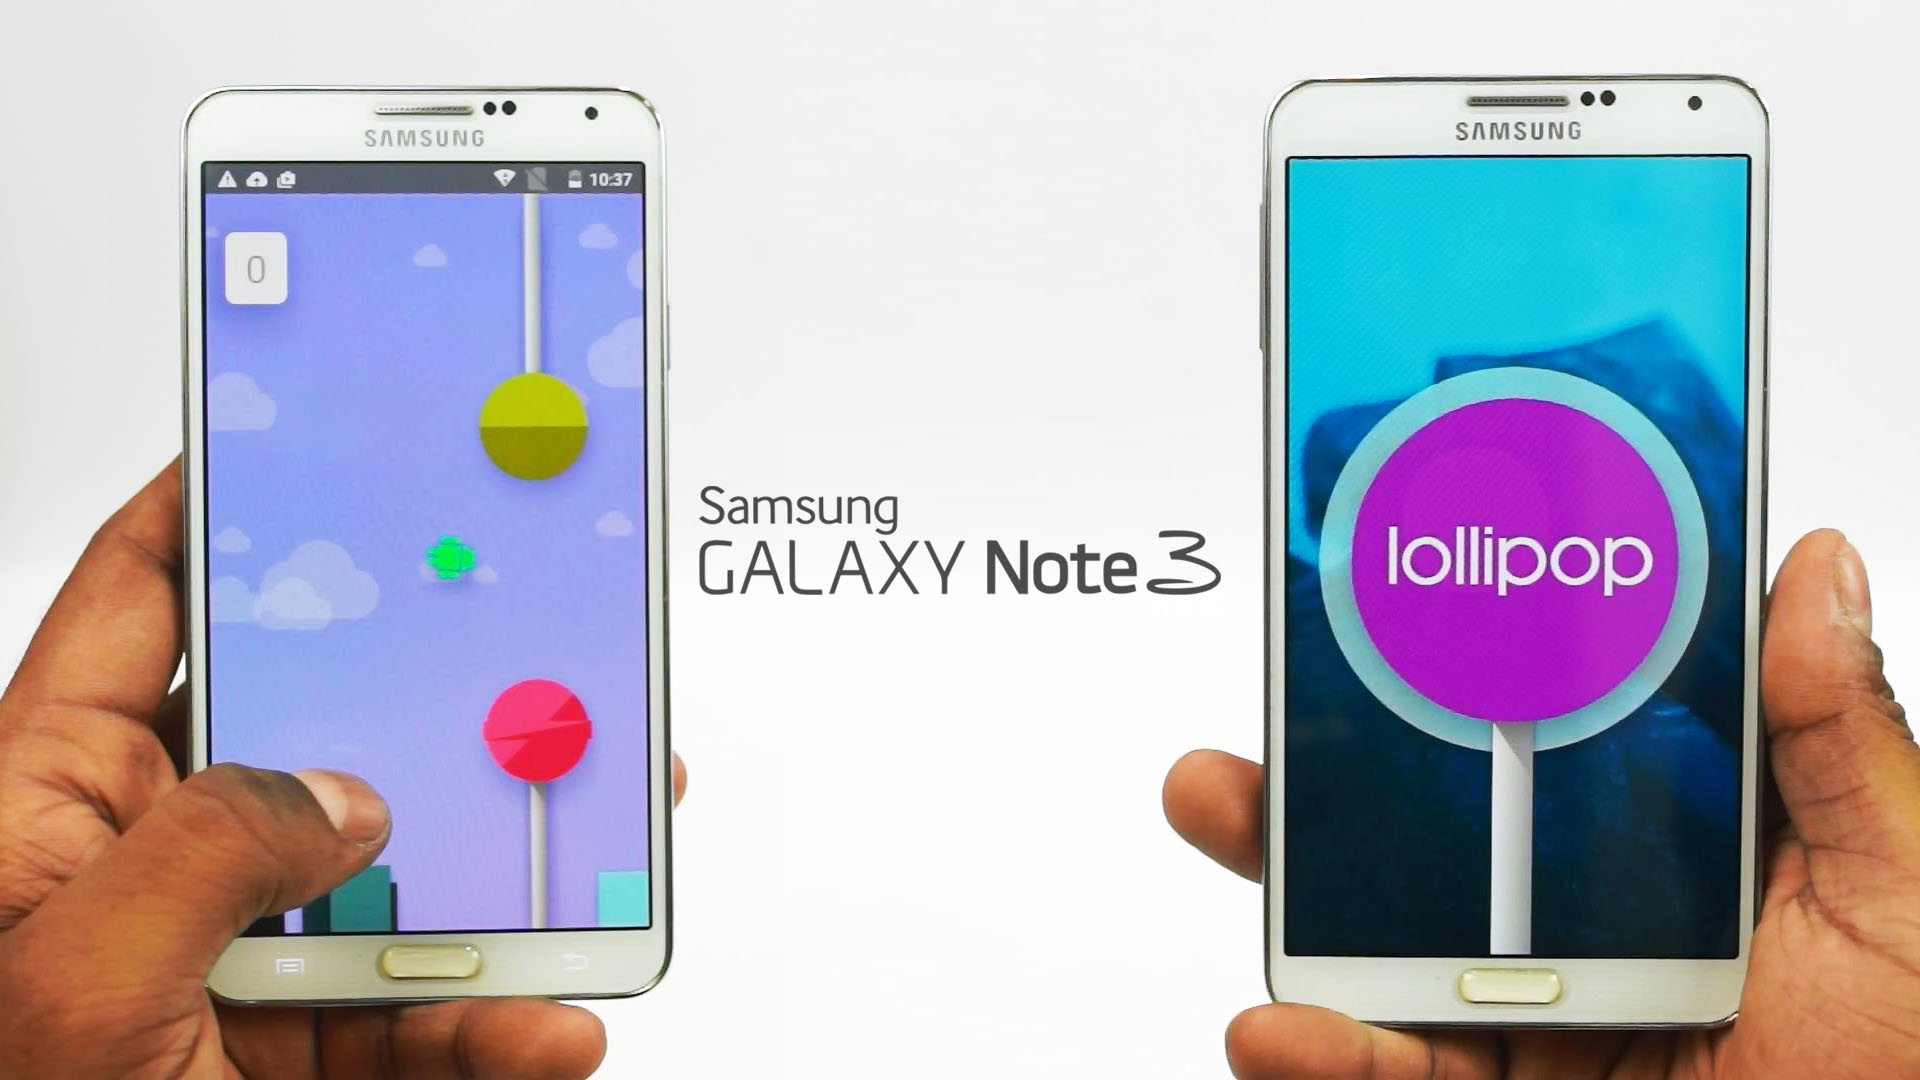 Galaxy Note 3 Android Lollipop update officially rolling out